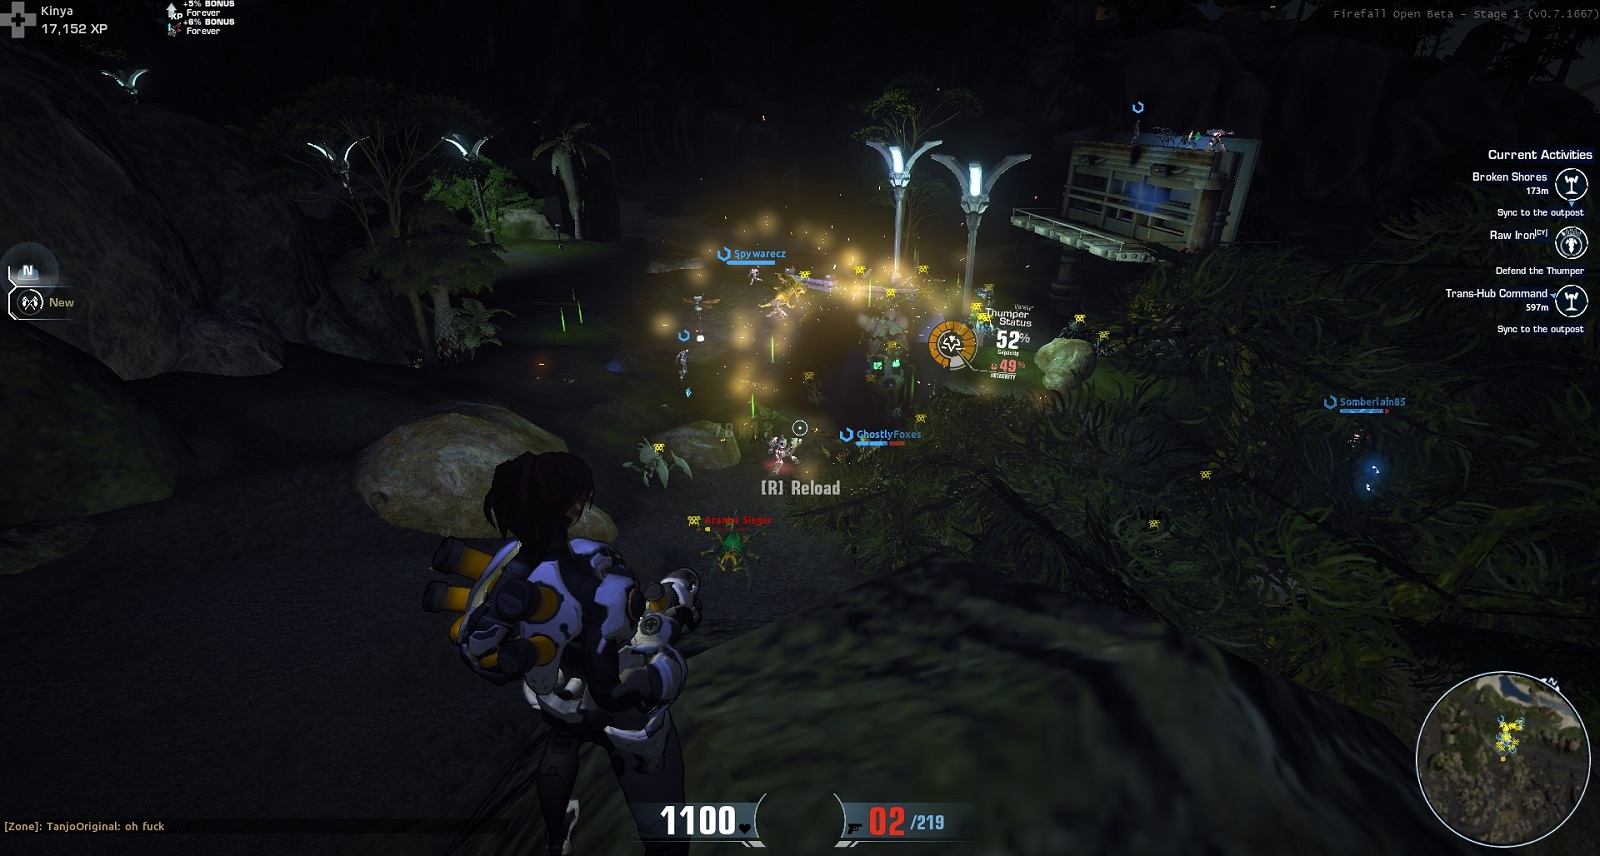 Firefall thumper extraction